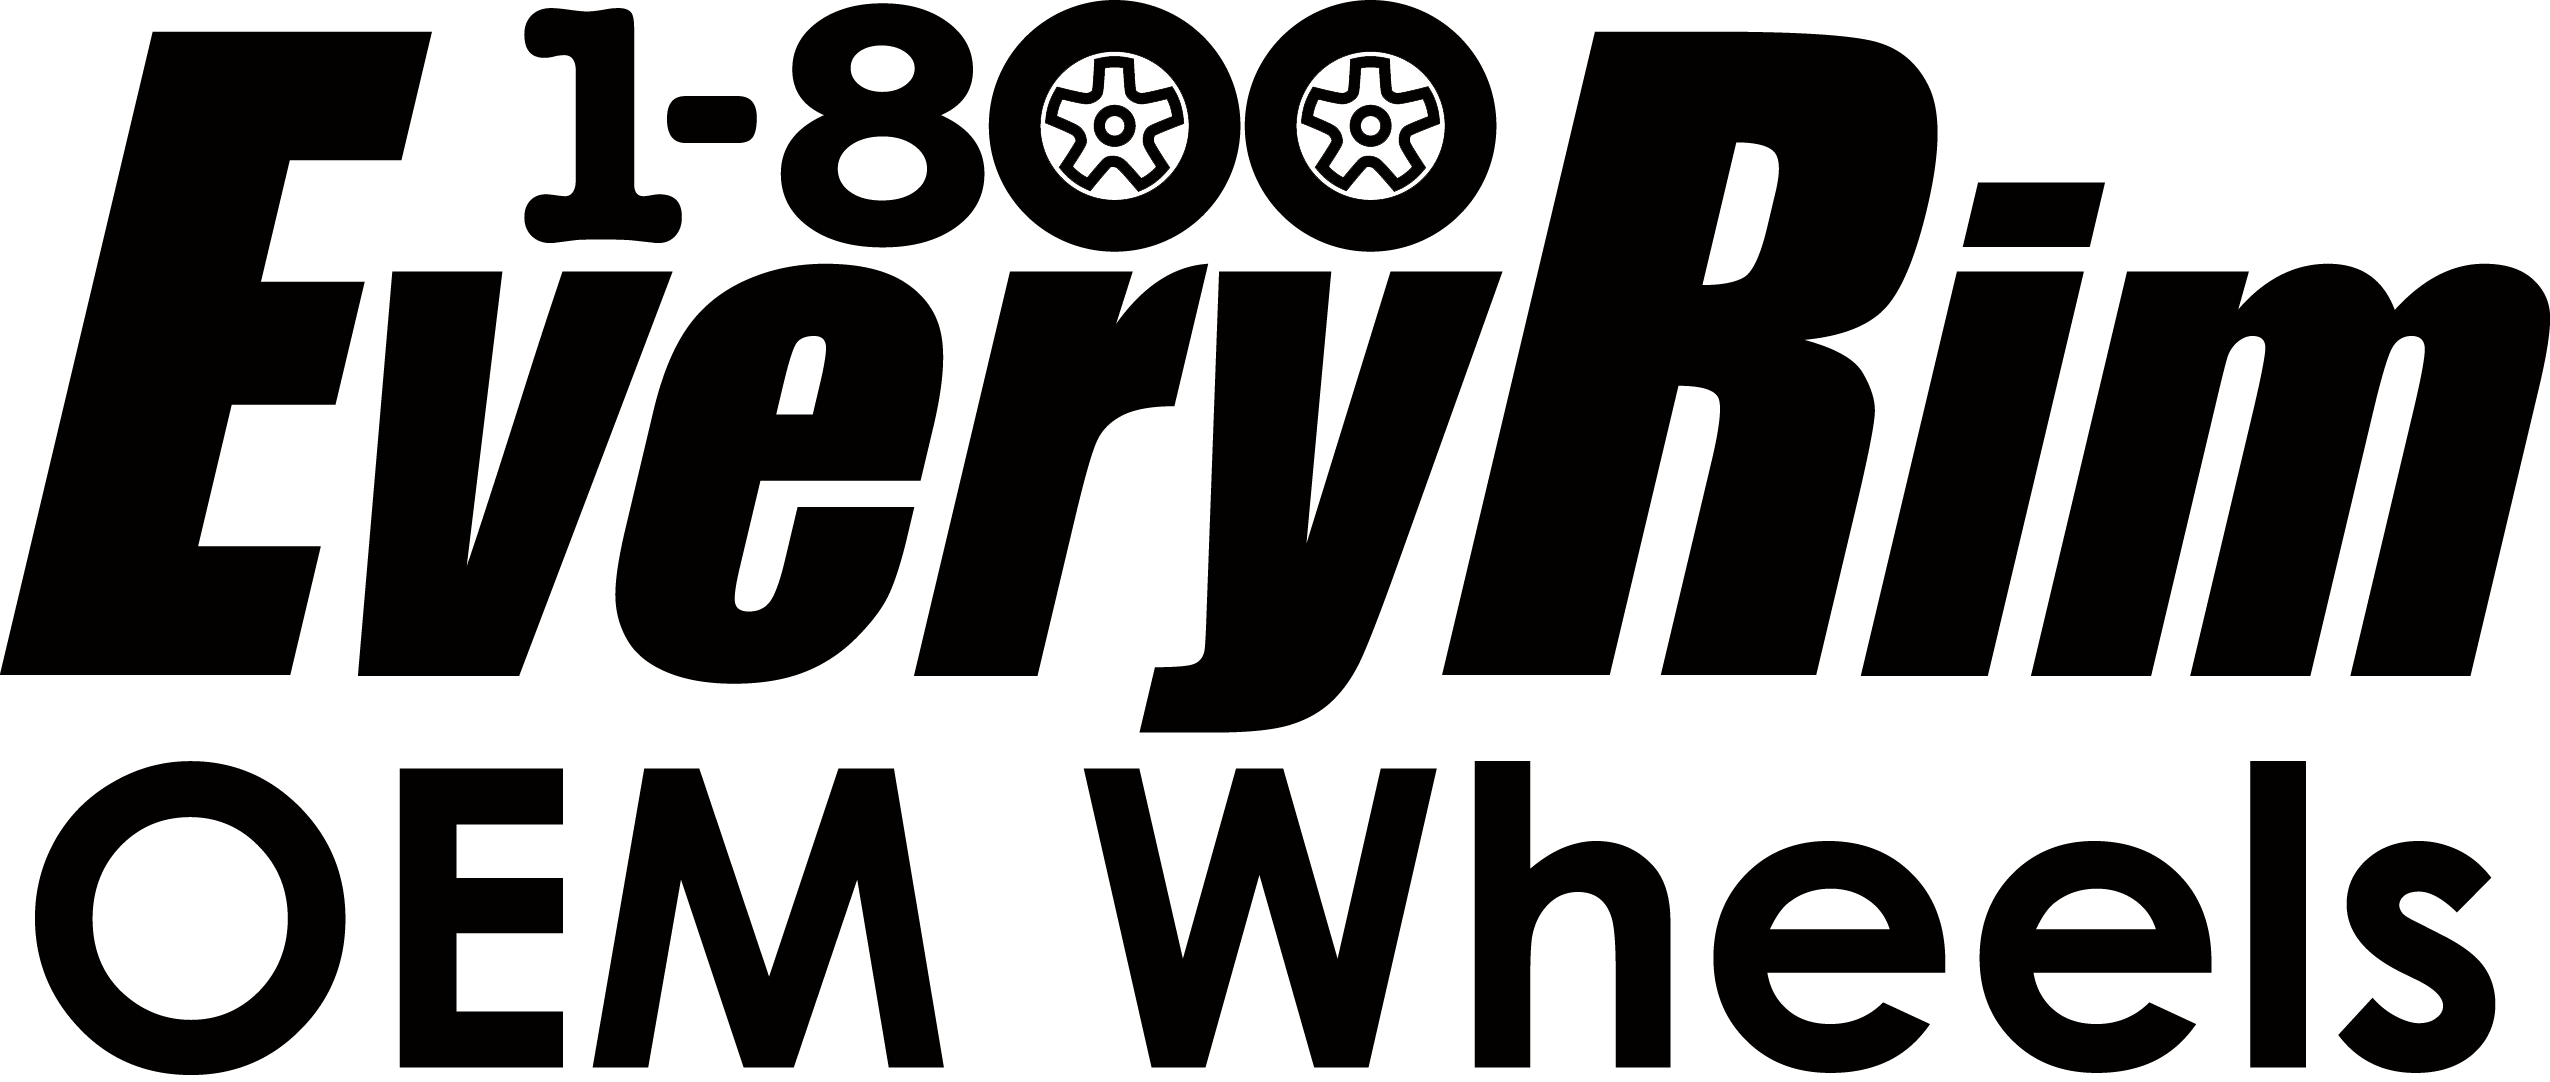 1-800EveryRim OEM Wheels